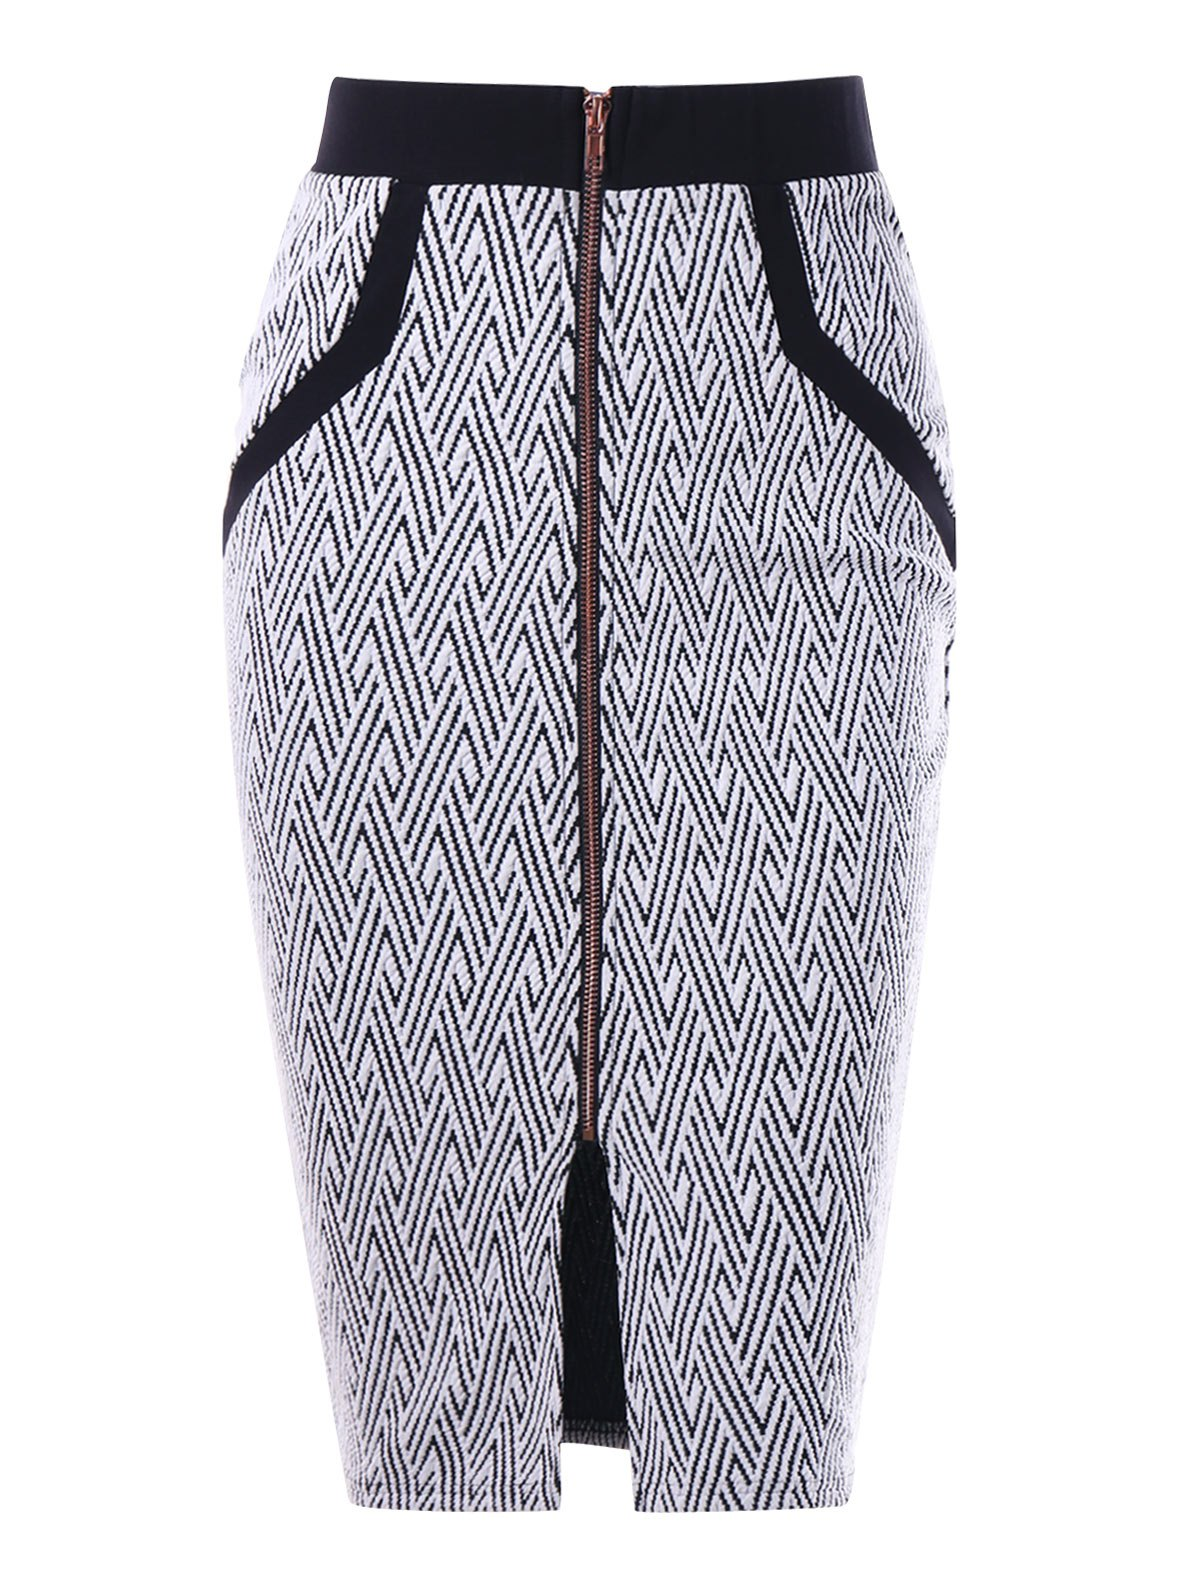 Best Monochrome Zip Up Pencil Skirt